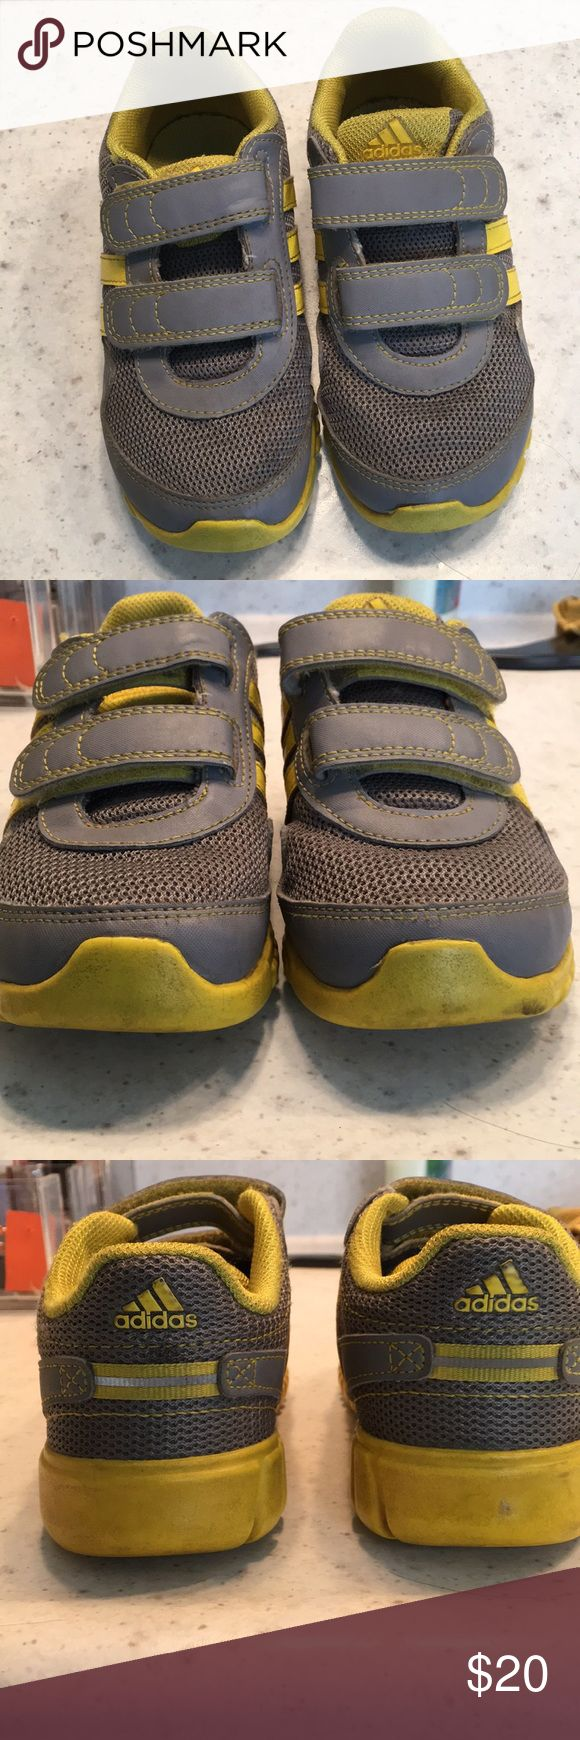 Toddler boys Adidas tennis shoes Great used condition. Scuffs around bottom edges and some dirt wear but upper part in excellent shape. Plenty of wear left. Smoke free and pet free home. adidas Shoes Sneakers